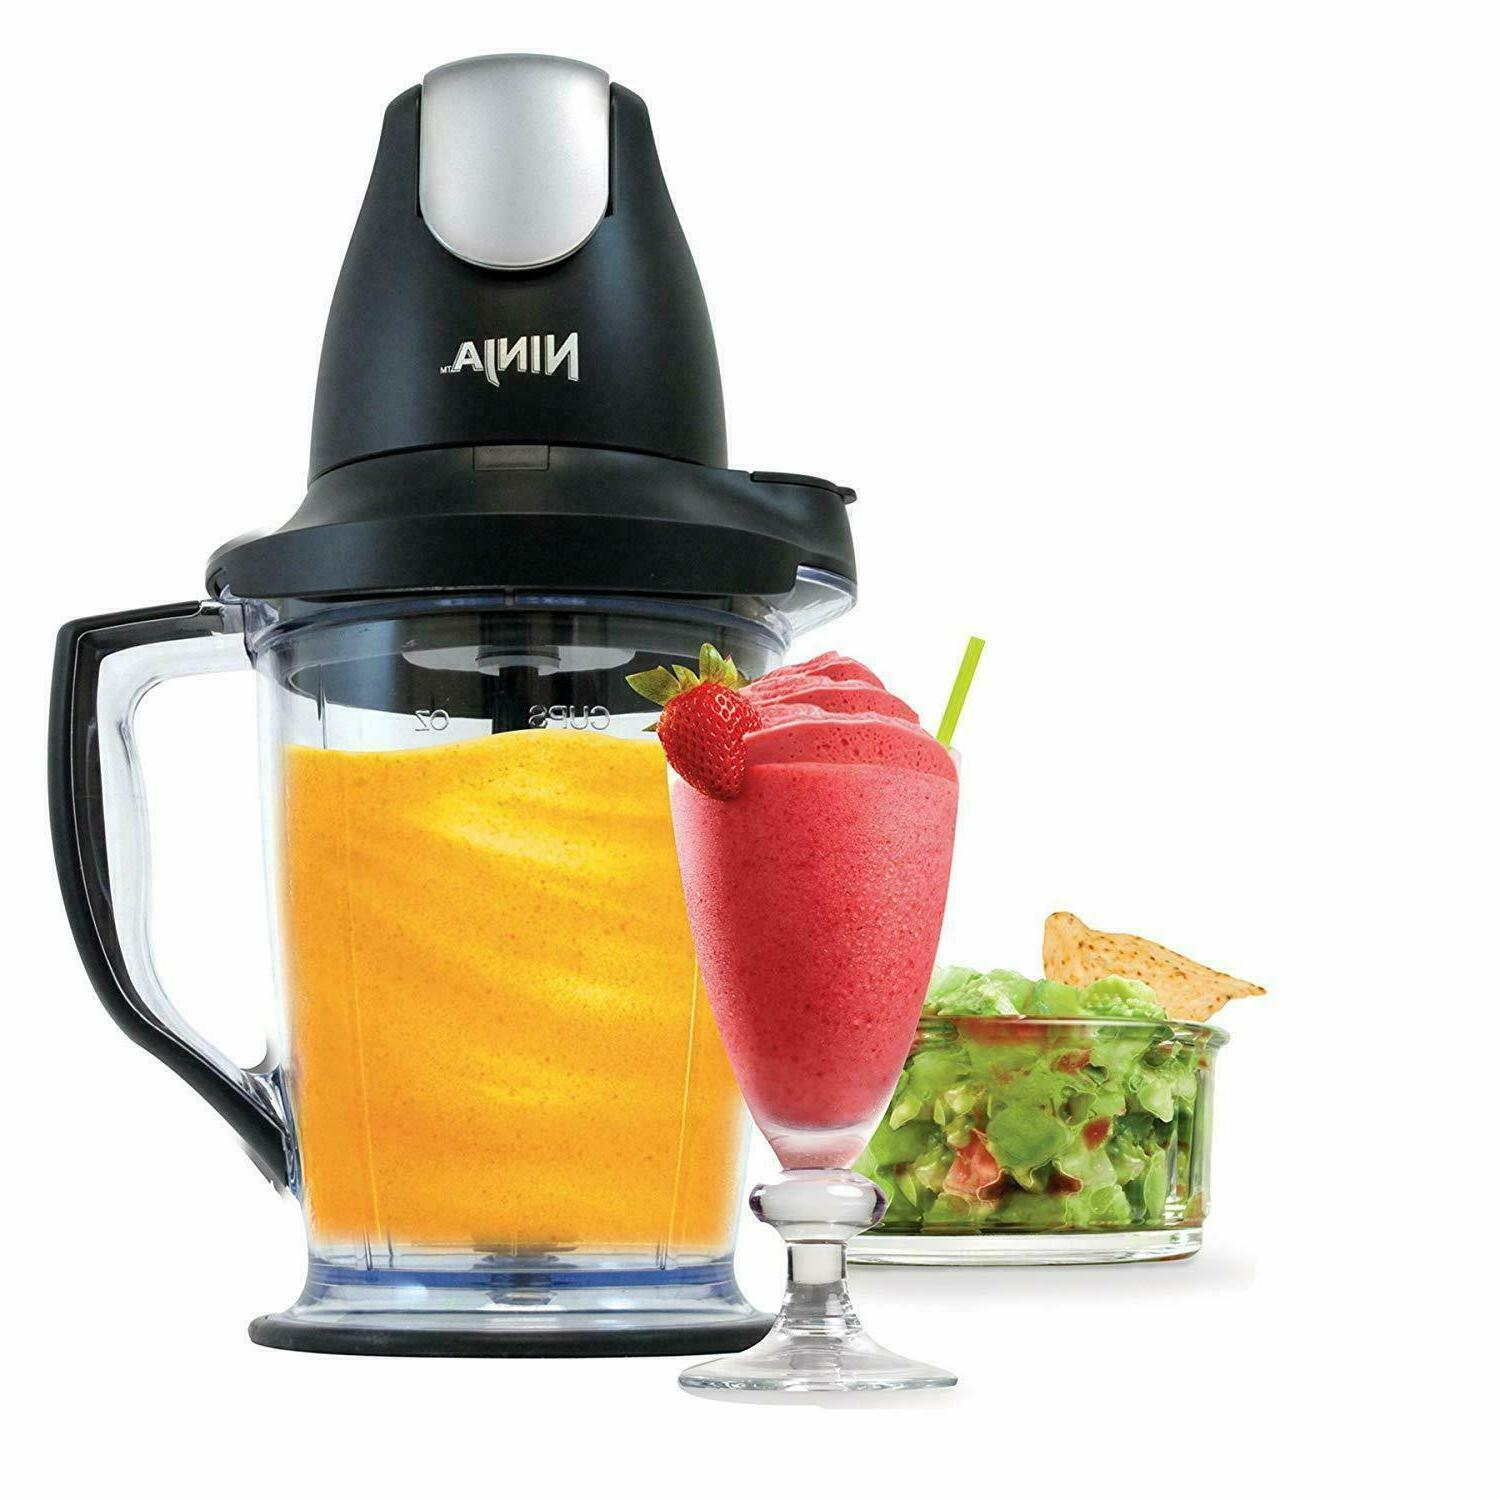 Ninja Blender Prep Professional 40 oz. Food Crush Chop